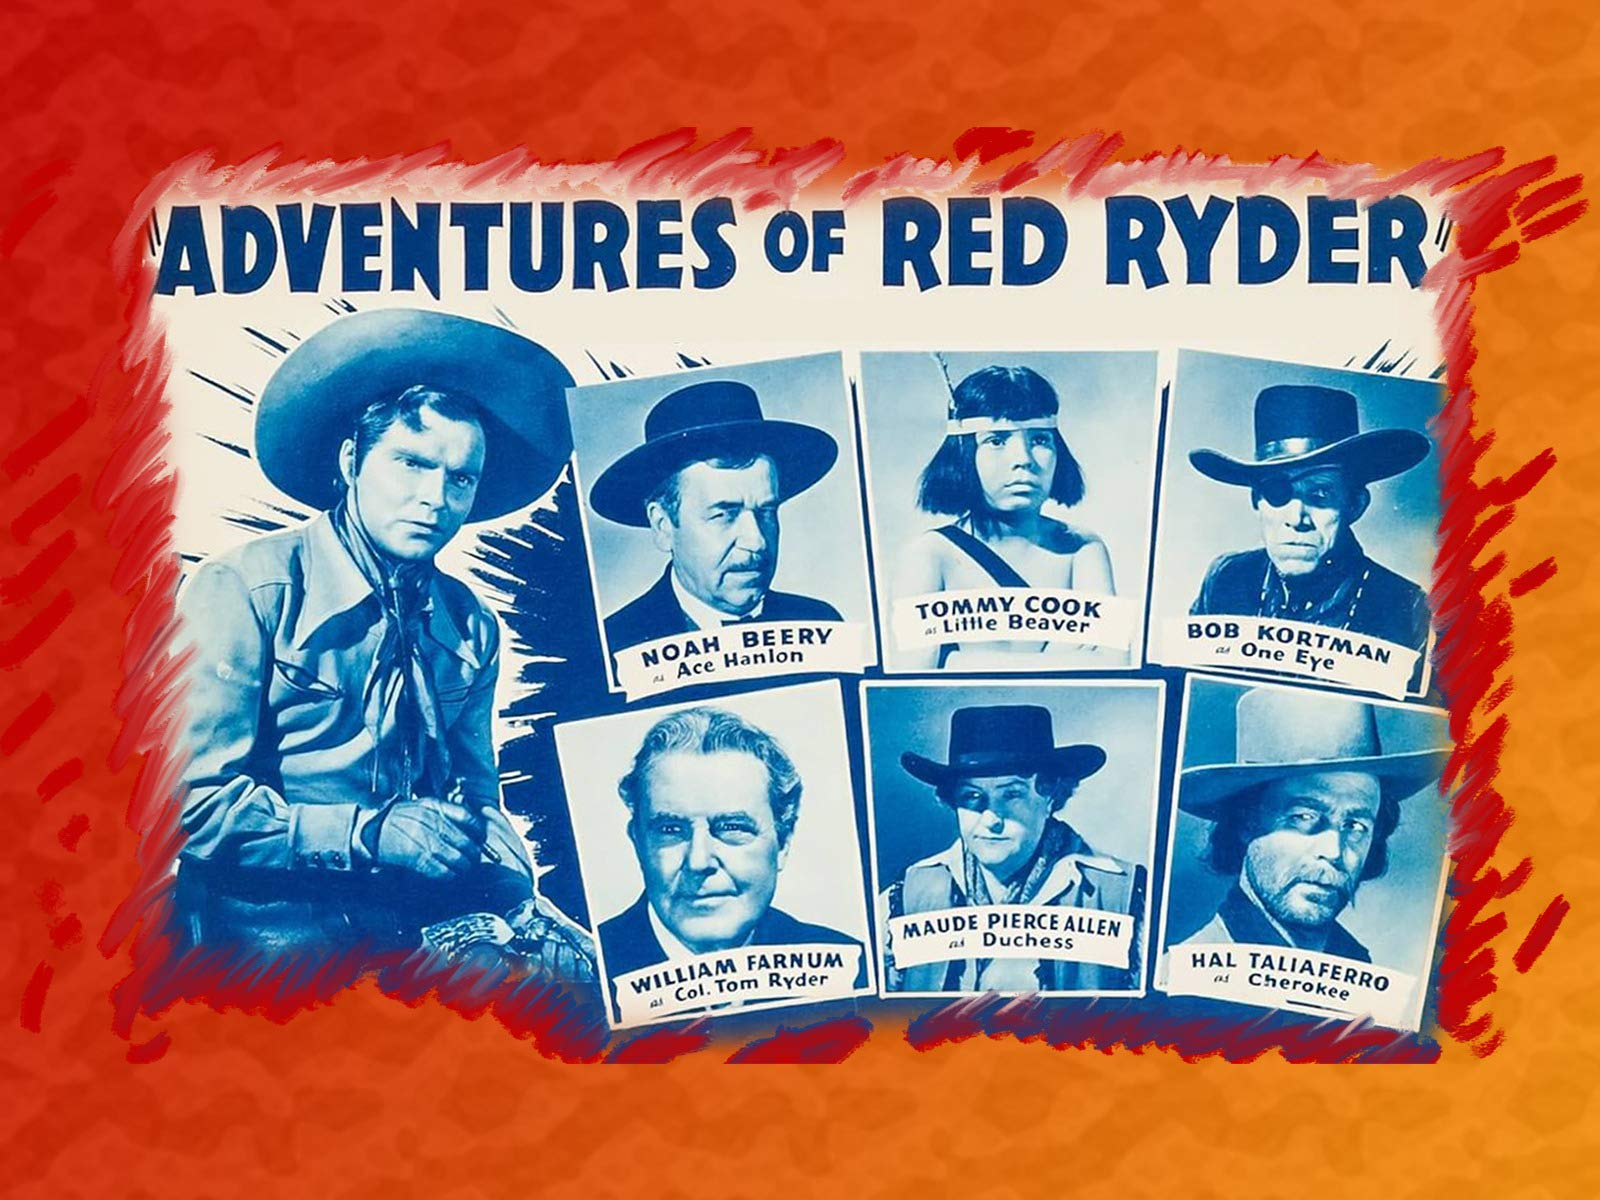 Adventures of Red Ryder